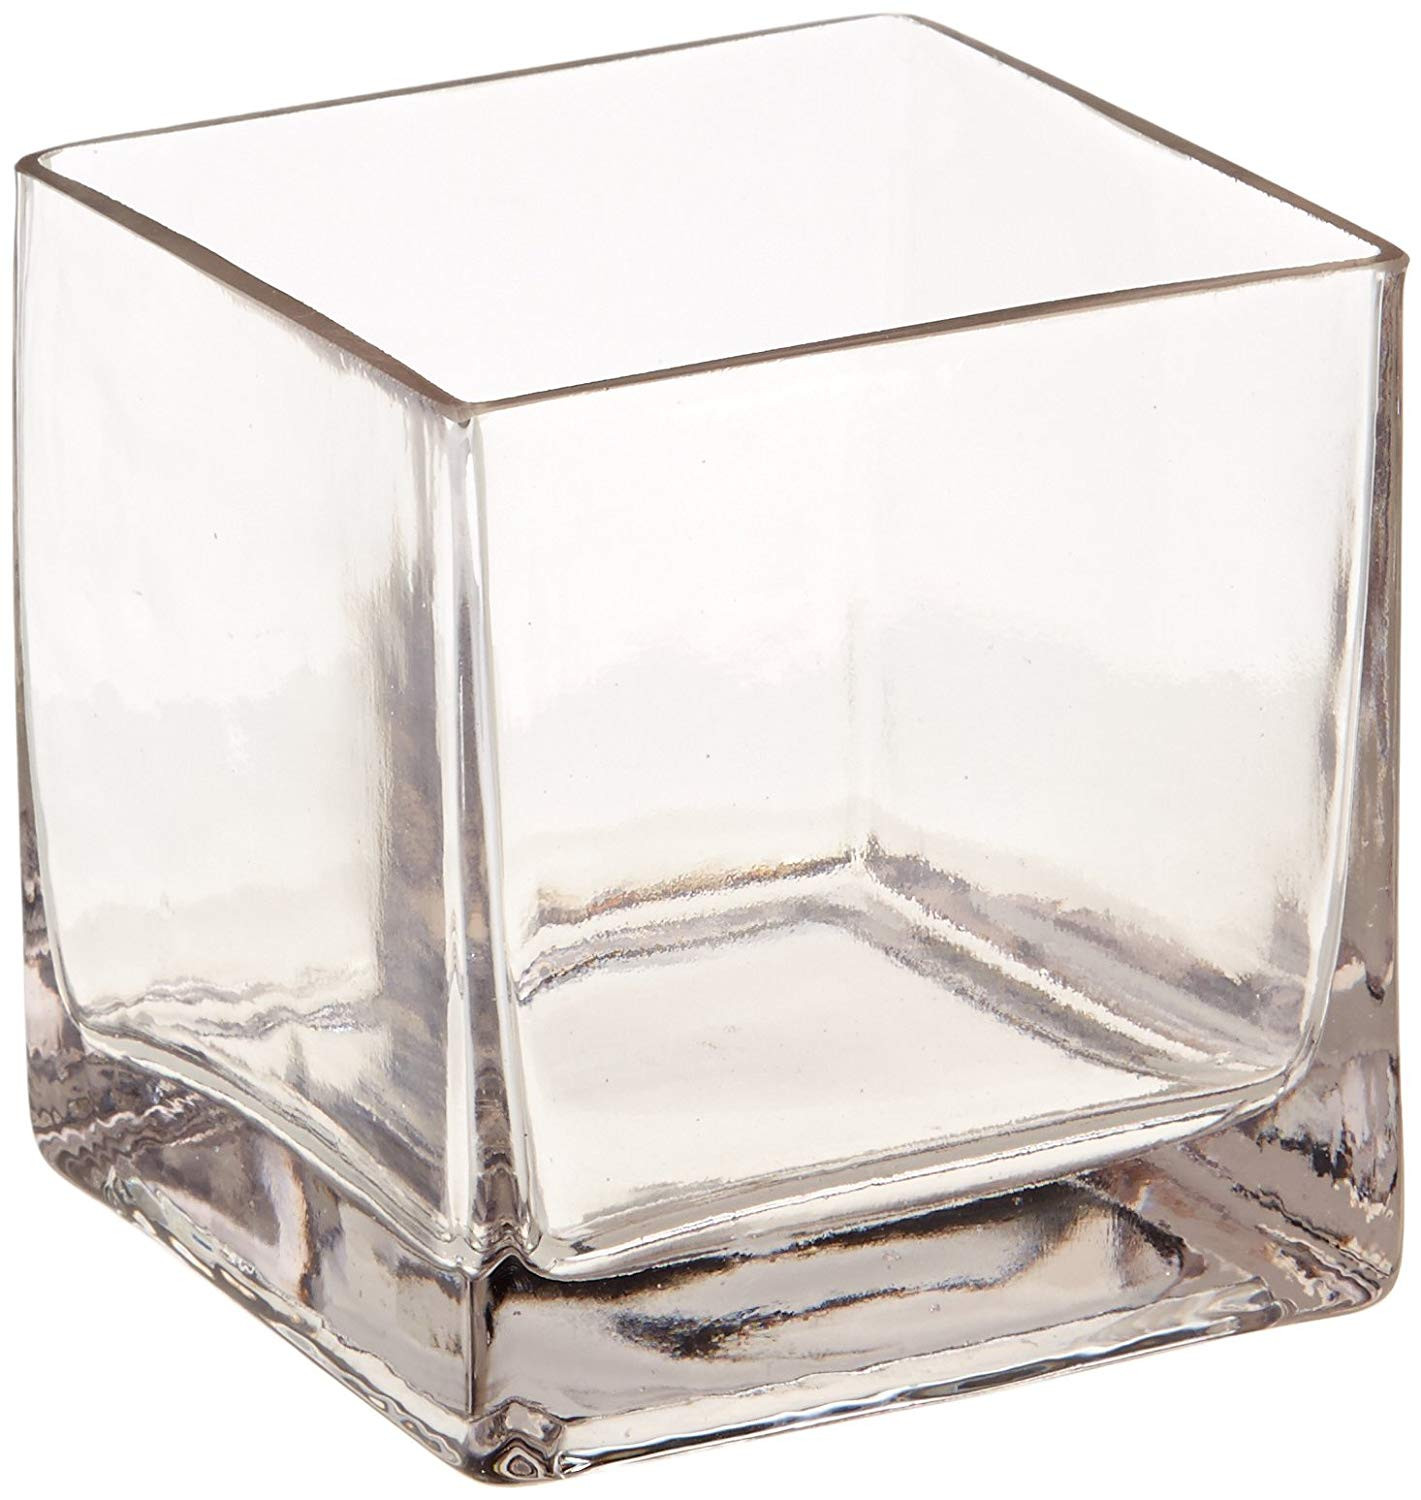 black ceramic cube vase of amazon com 12piece 4 square crystal clear glass vase home kitchen pertaining to 71 jezfmvnl sl1500